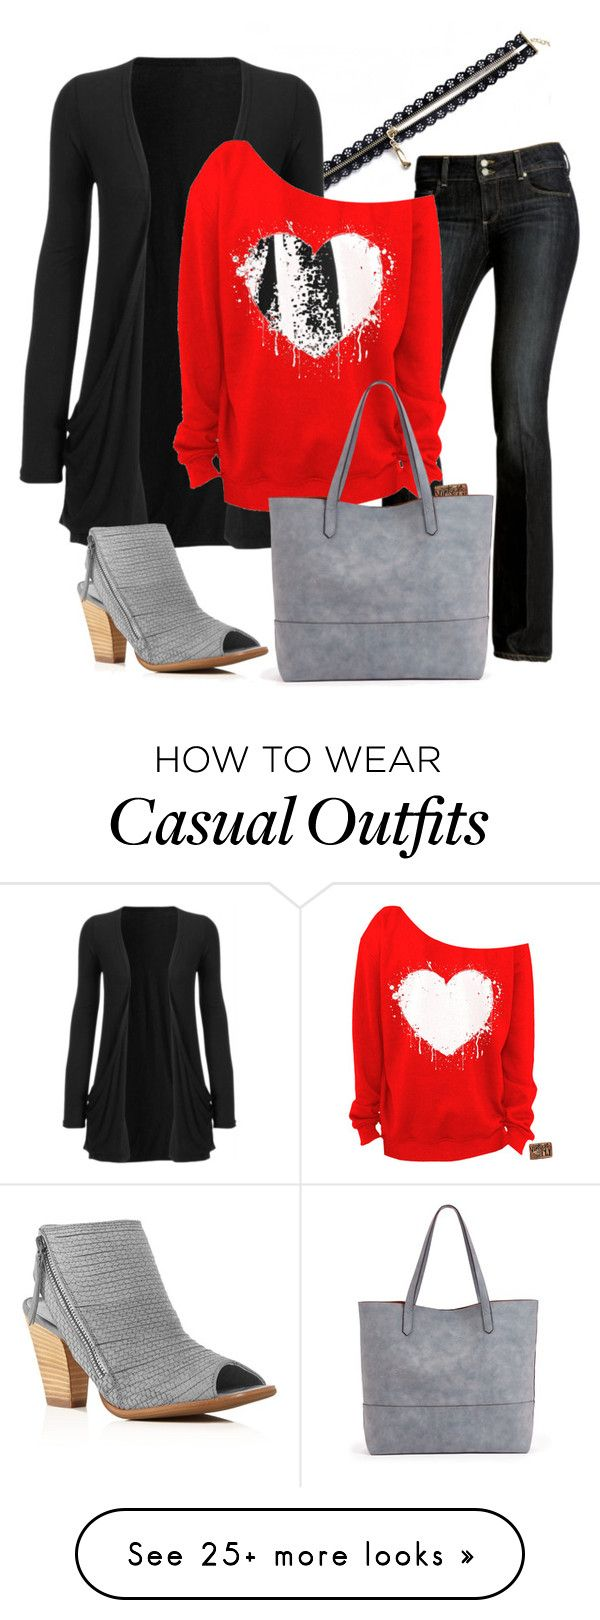 """Be my Valentine - Casual women's outfit"" by ninecarpstudiostore on Polyvore featuring Paige Denim, Sole Society, Paul Green, casual, outfit, Idea, valentine and fashionset"